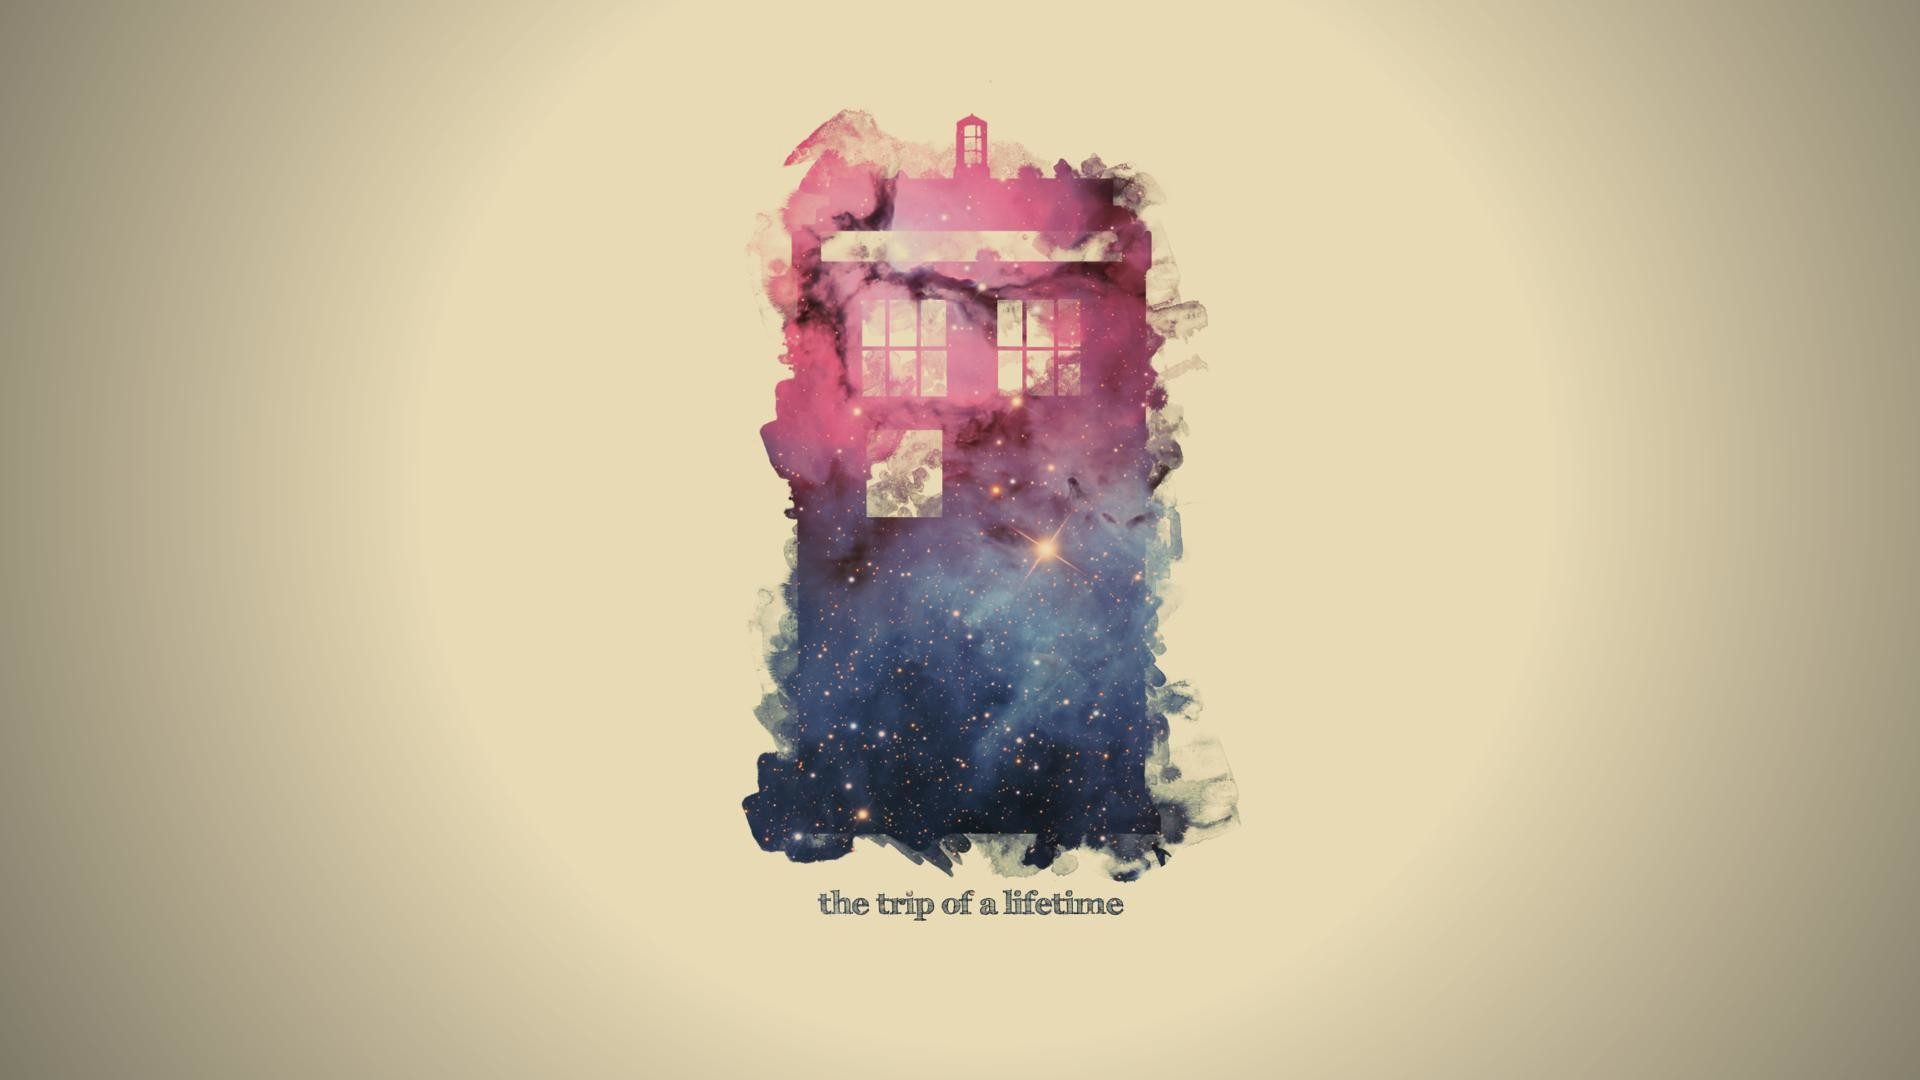 Great Wallpaper Mac Doctor Who - 412552-doctor-who-wallpapers-1920x1080-for-mac  Picture_458630.jpg